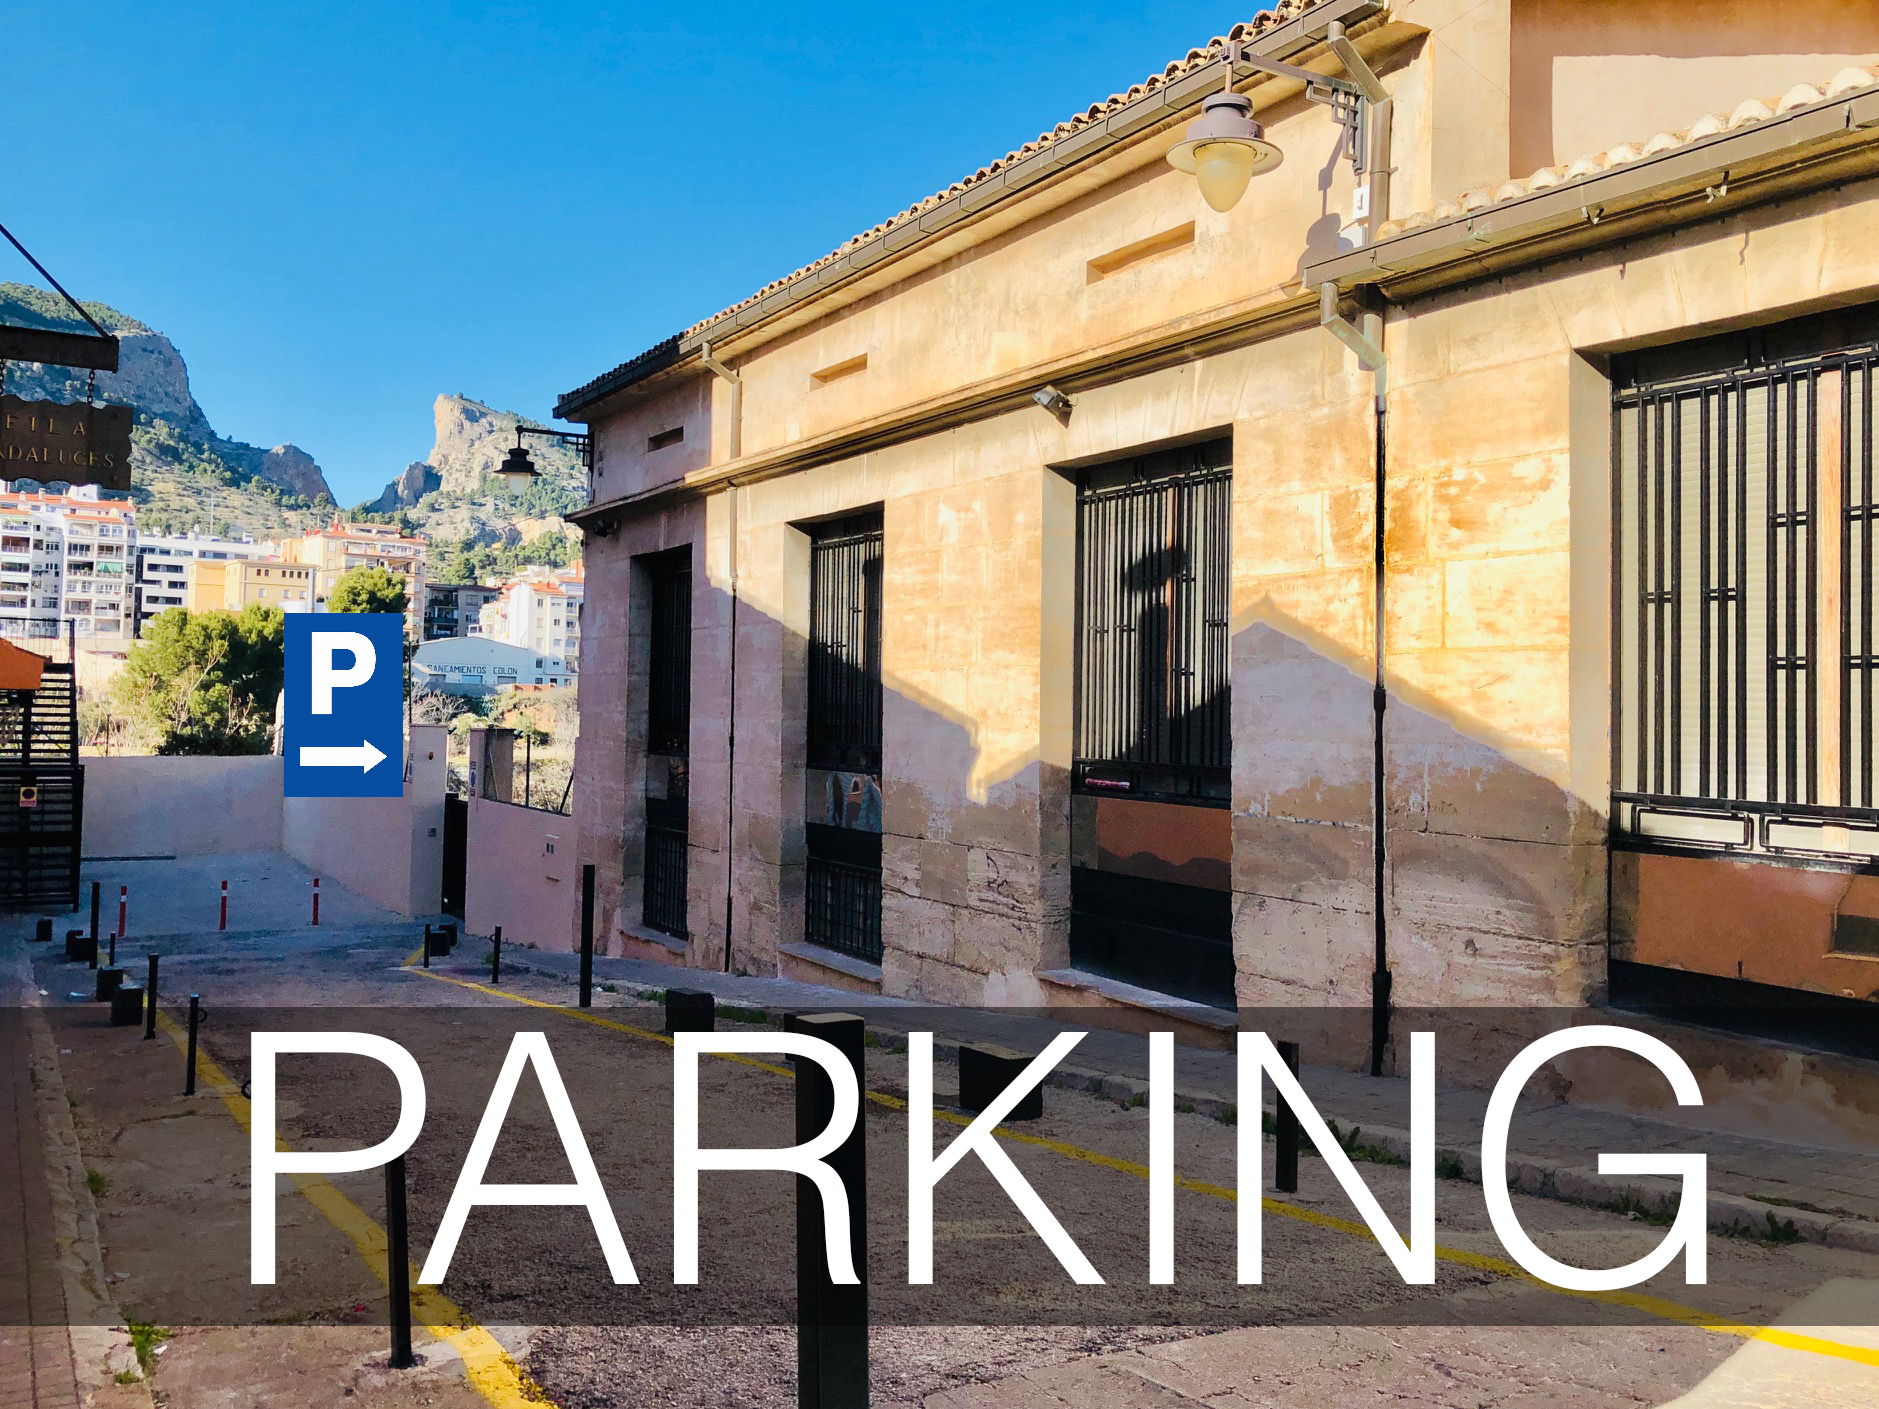 Disponemos de PARKING exclusivo para PACIENTES en pleno centro de Alcoy GRATIS